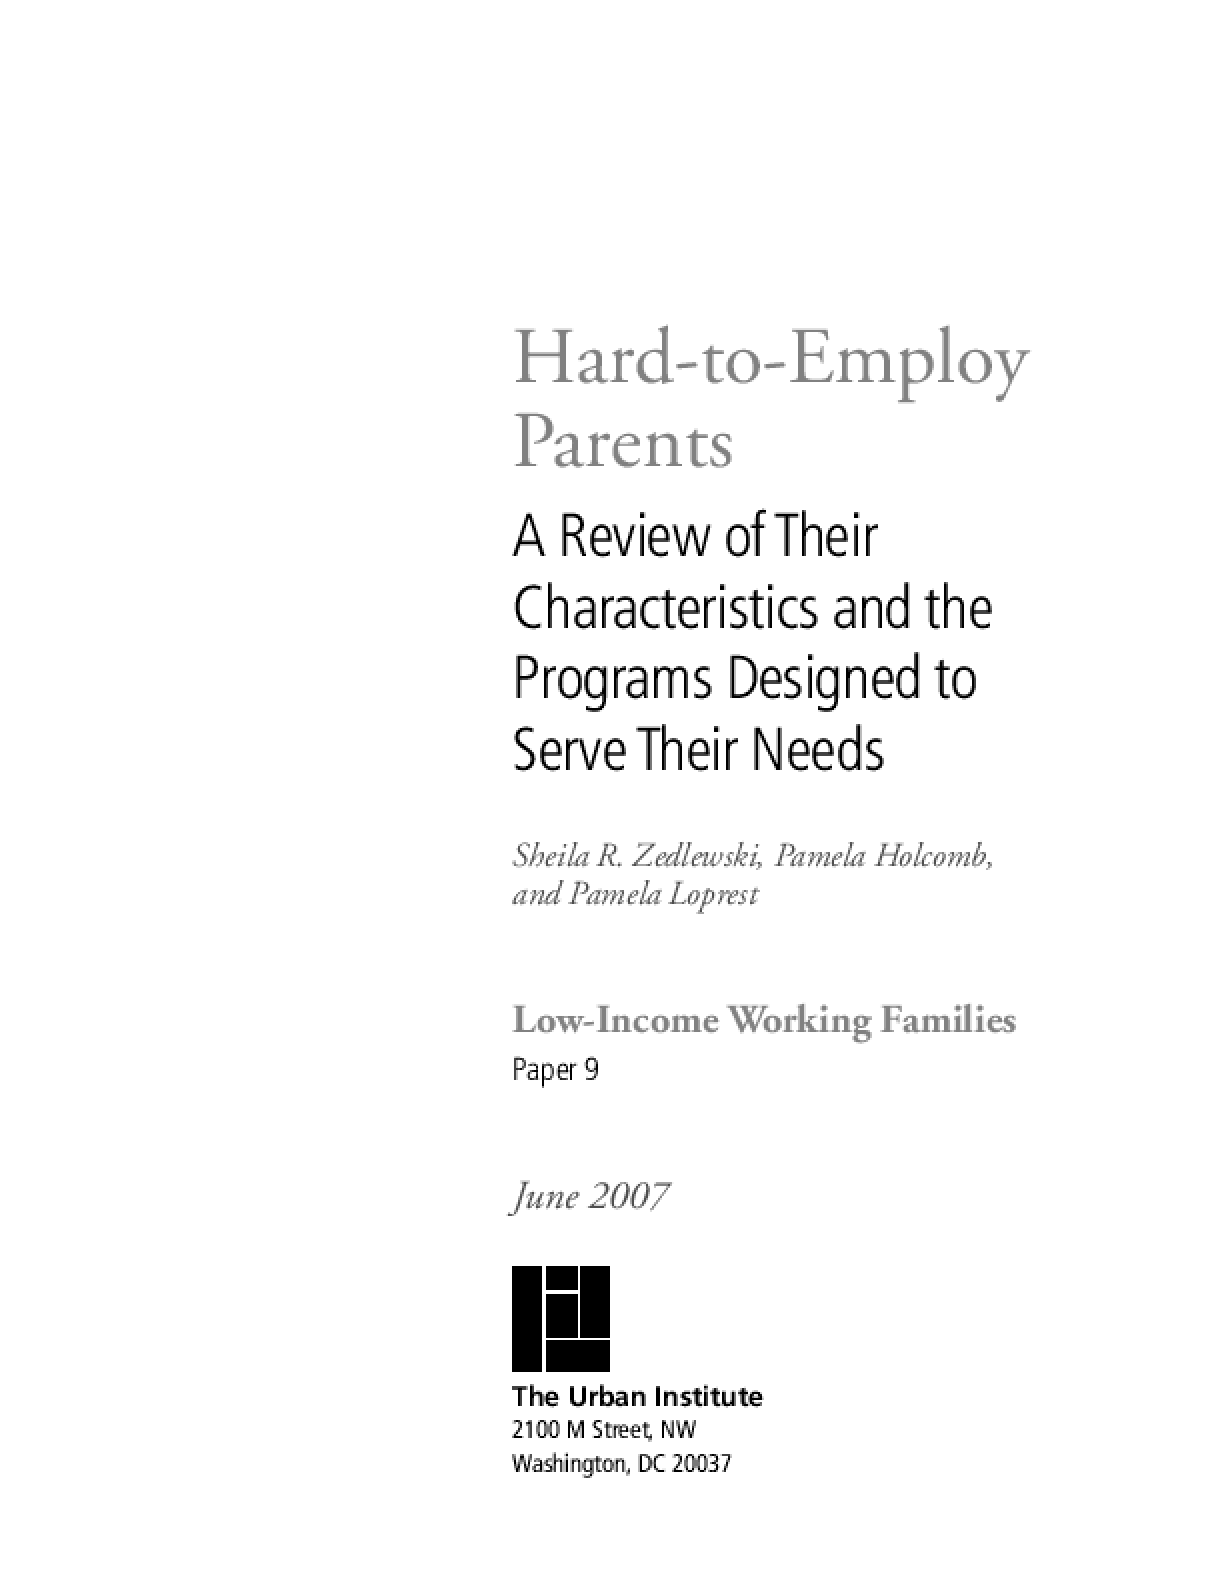 Hard-to-Employ Parents: A Review of Their Characteristics and the Programs Designed to Serve Their Needs